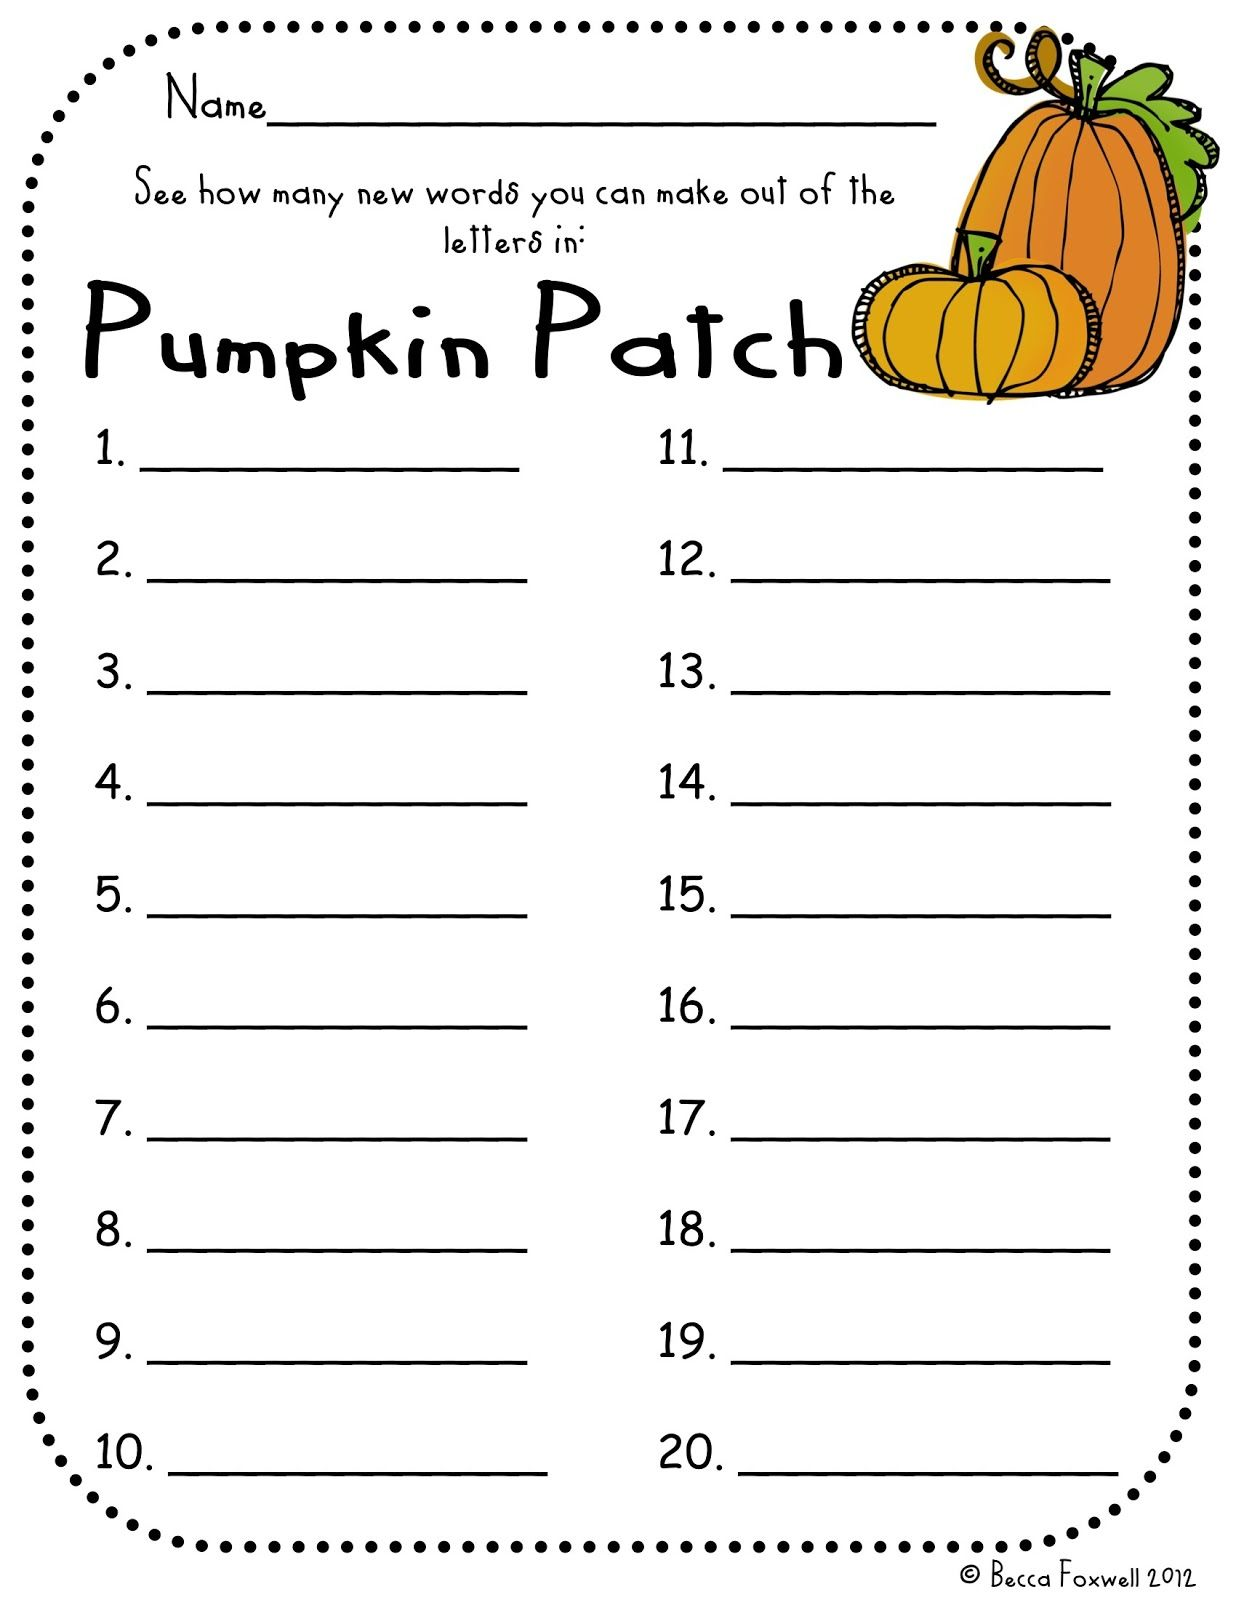 Pumpkin Patch Word Building Freebie Classroom